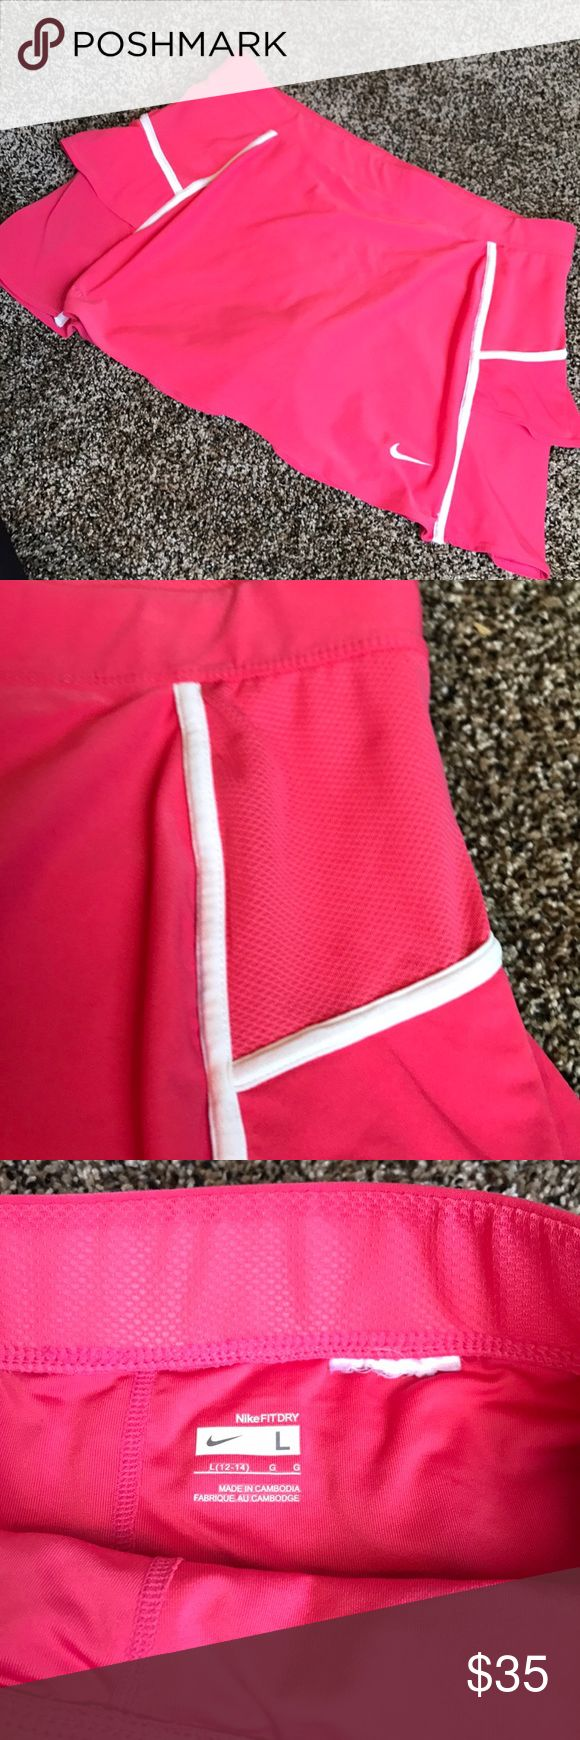 Like-New Nike Tennis Skirt. GREAT CONDITION...worn once or twice. Note: Care tag is cut out bc it scratch when playing. Size tag is stamped in (pictured). Built in shorts. Mesh and ruffled details. Nike Skirts